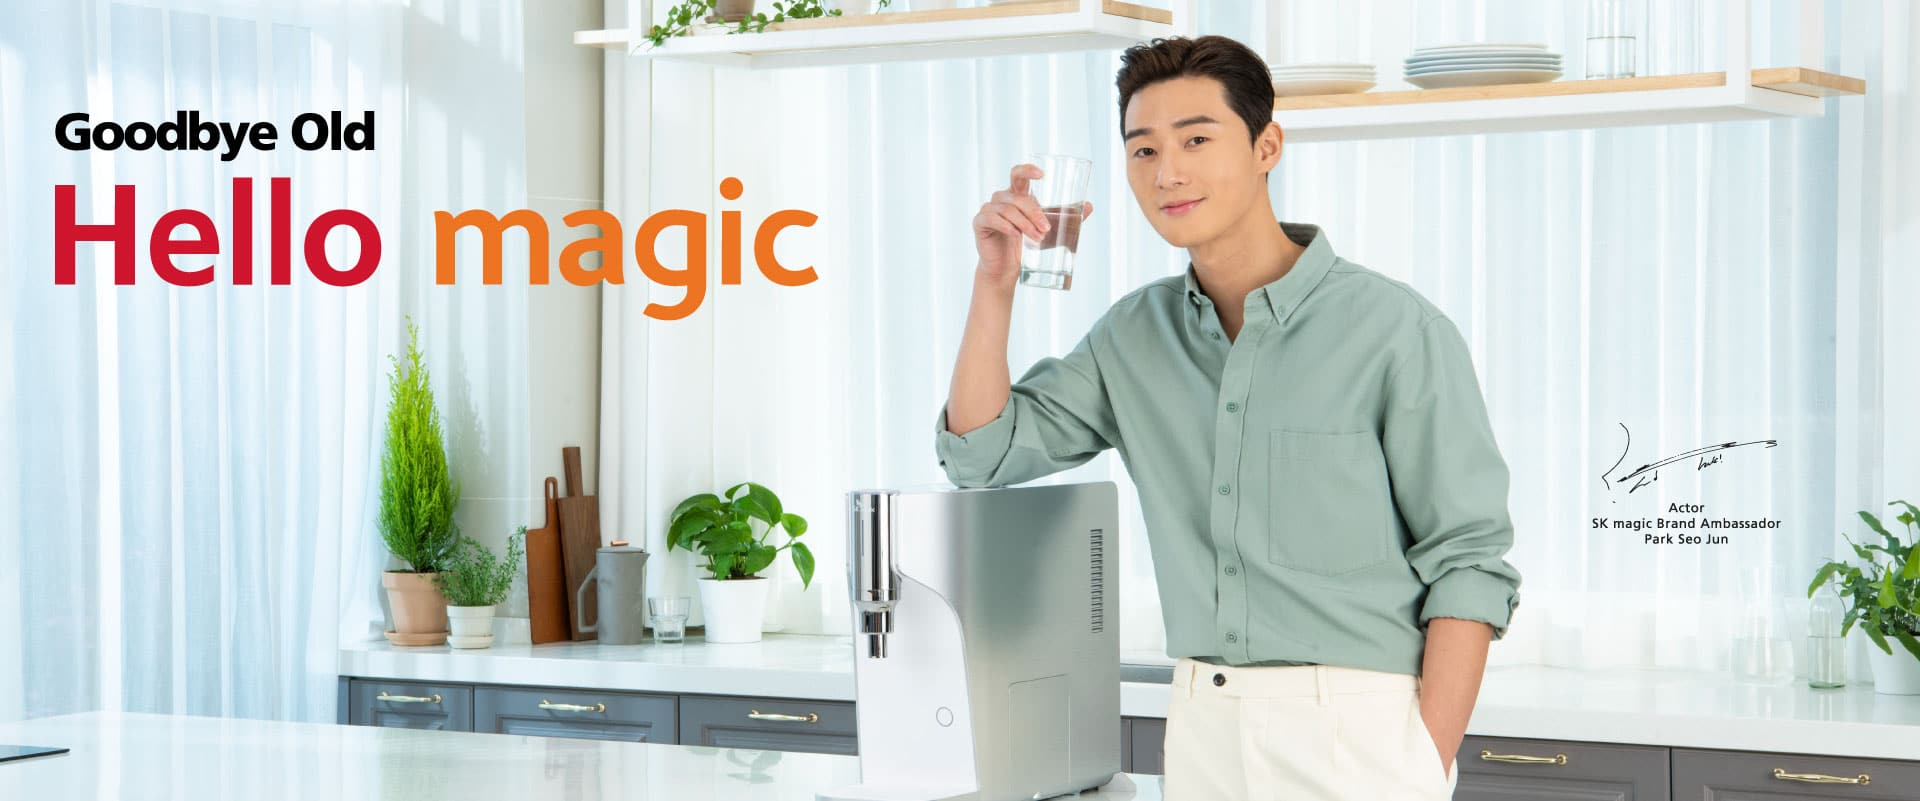 Park Seo Jun PSJ SK magic